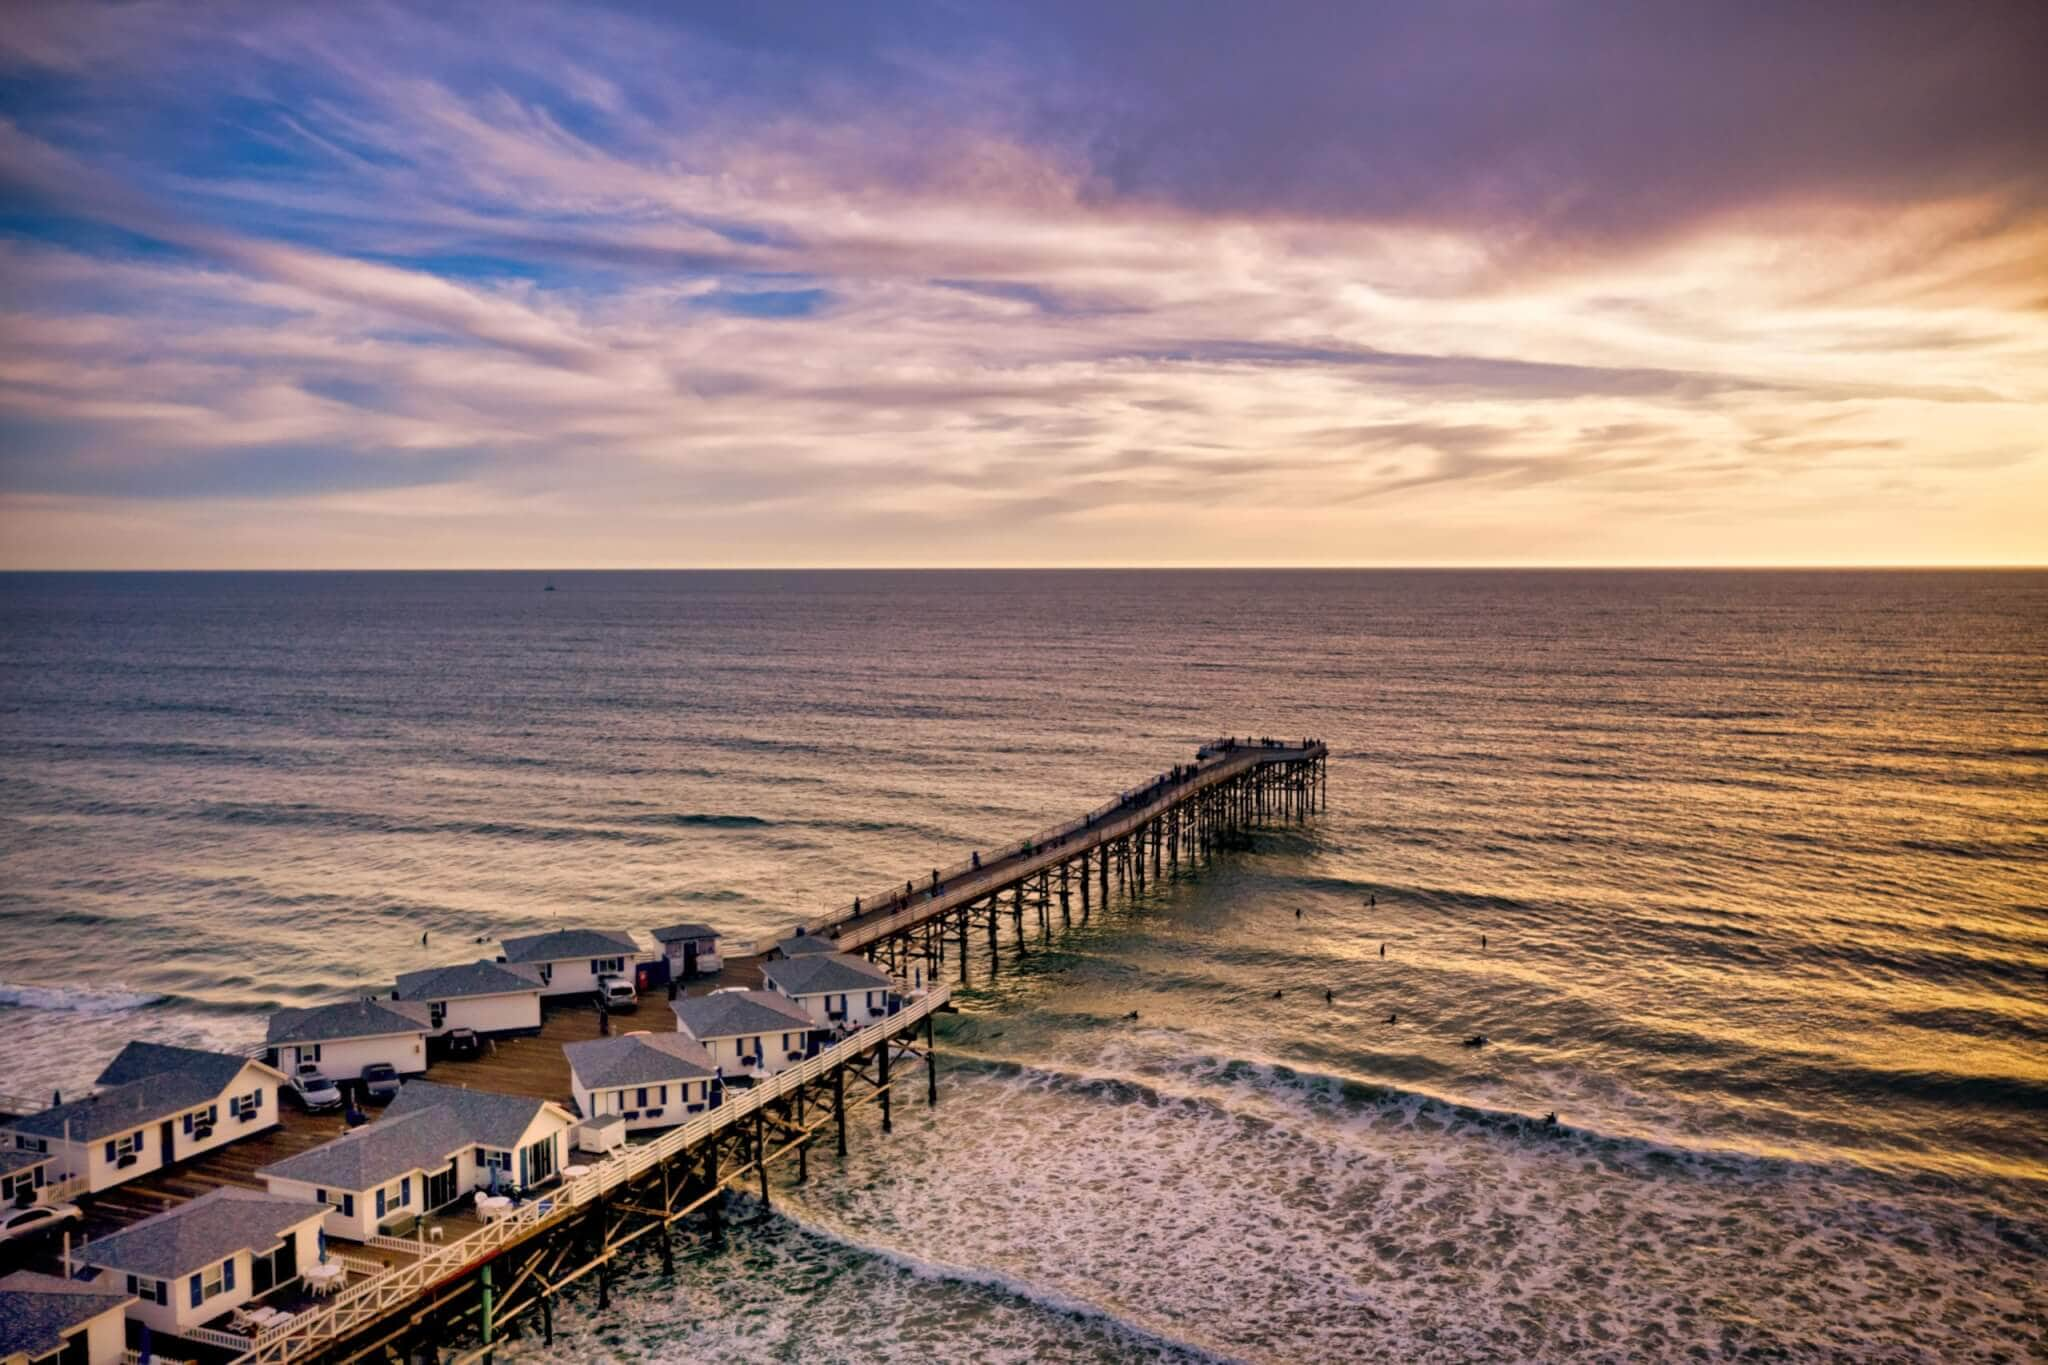 Crystal Pier in Pacific Beach, CA